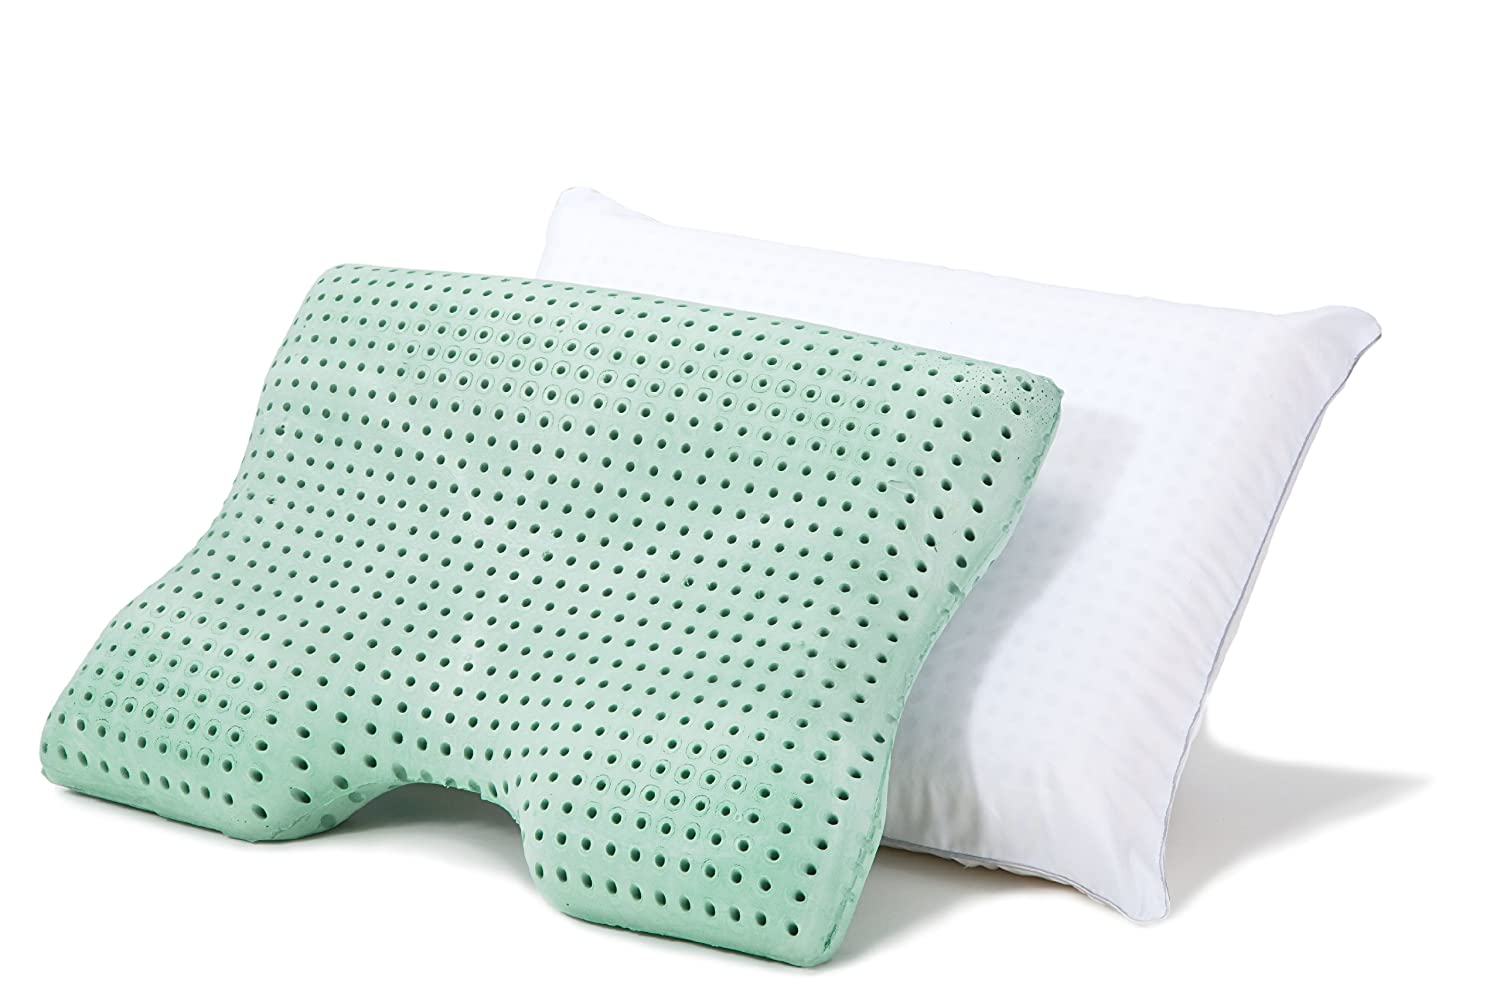 SleepJoy ViscoFresh Advanced Contour Memory Foam Pillow